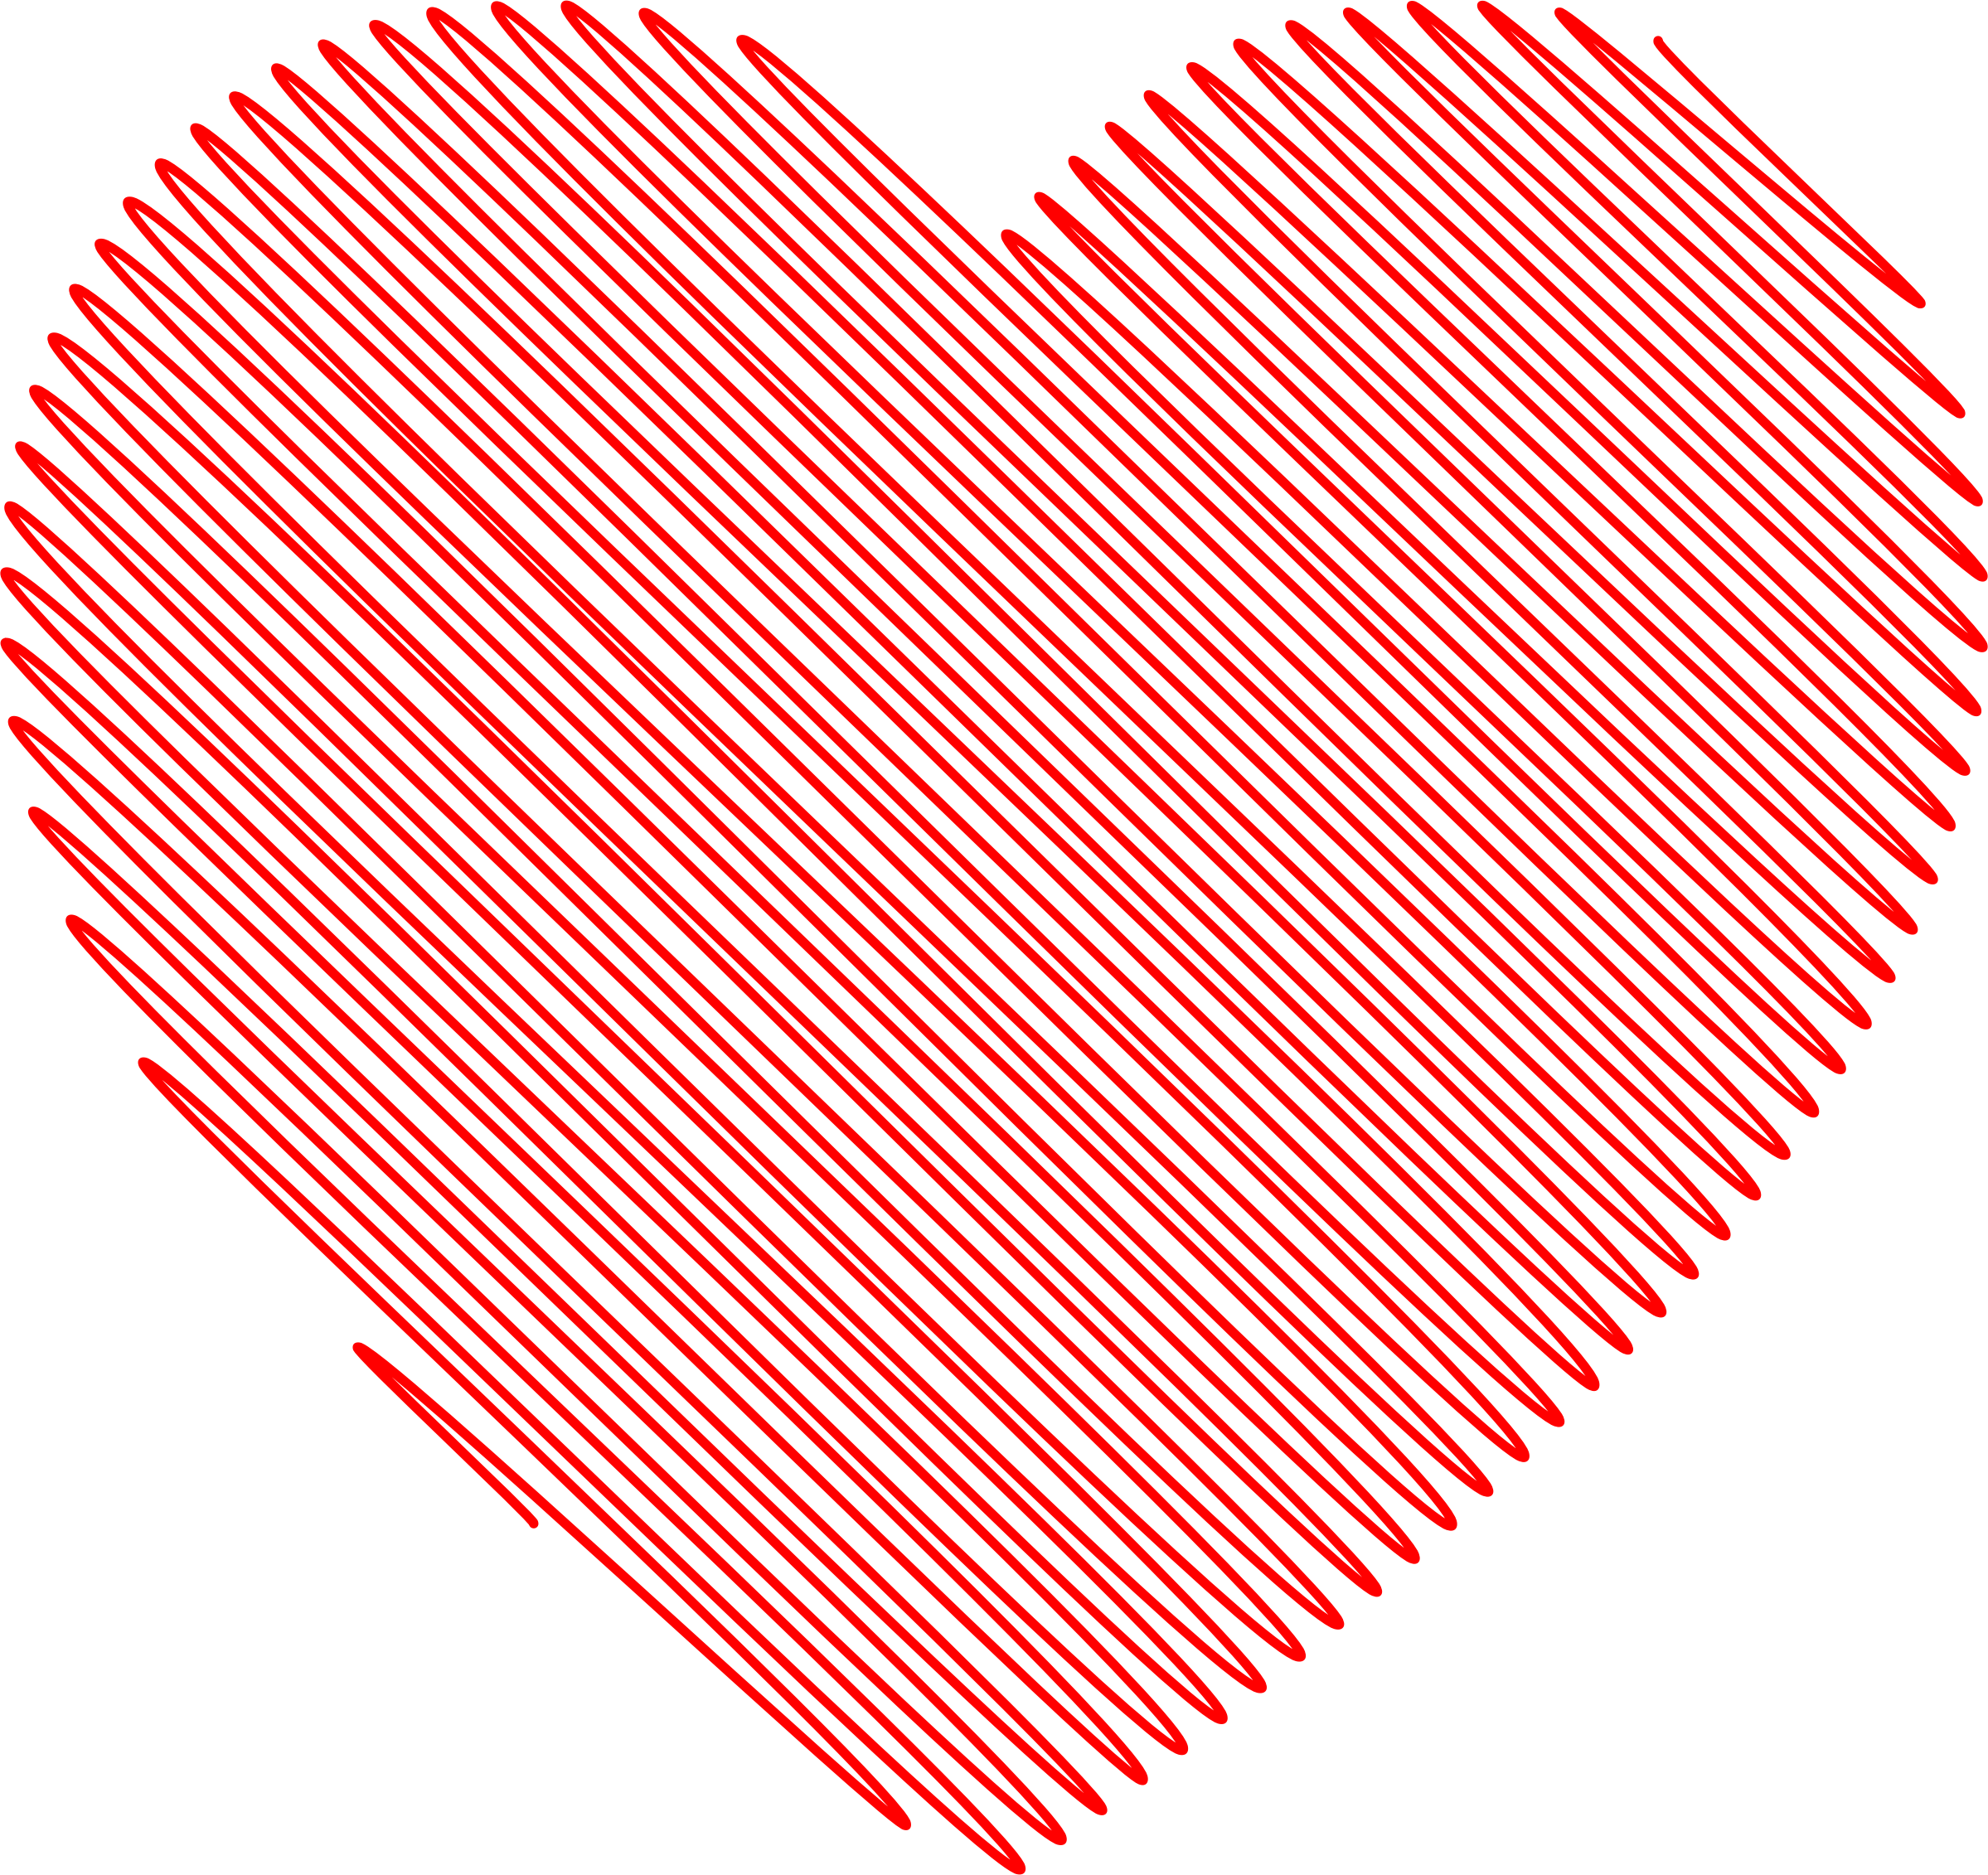 Vintage heart png. Scribble icons free and